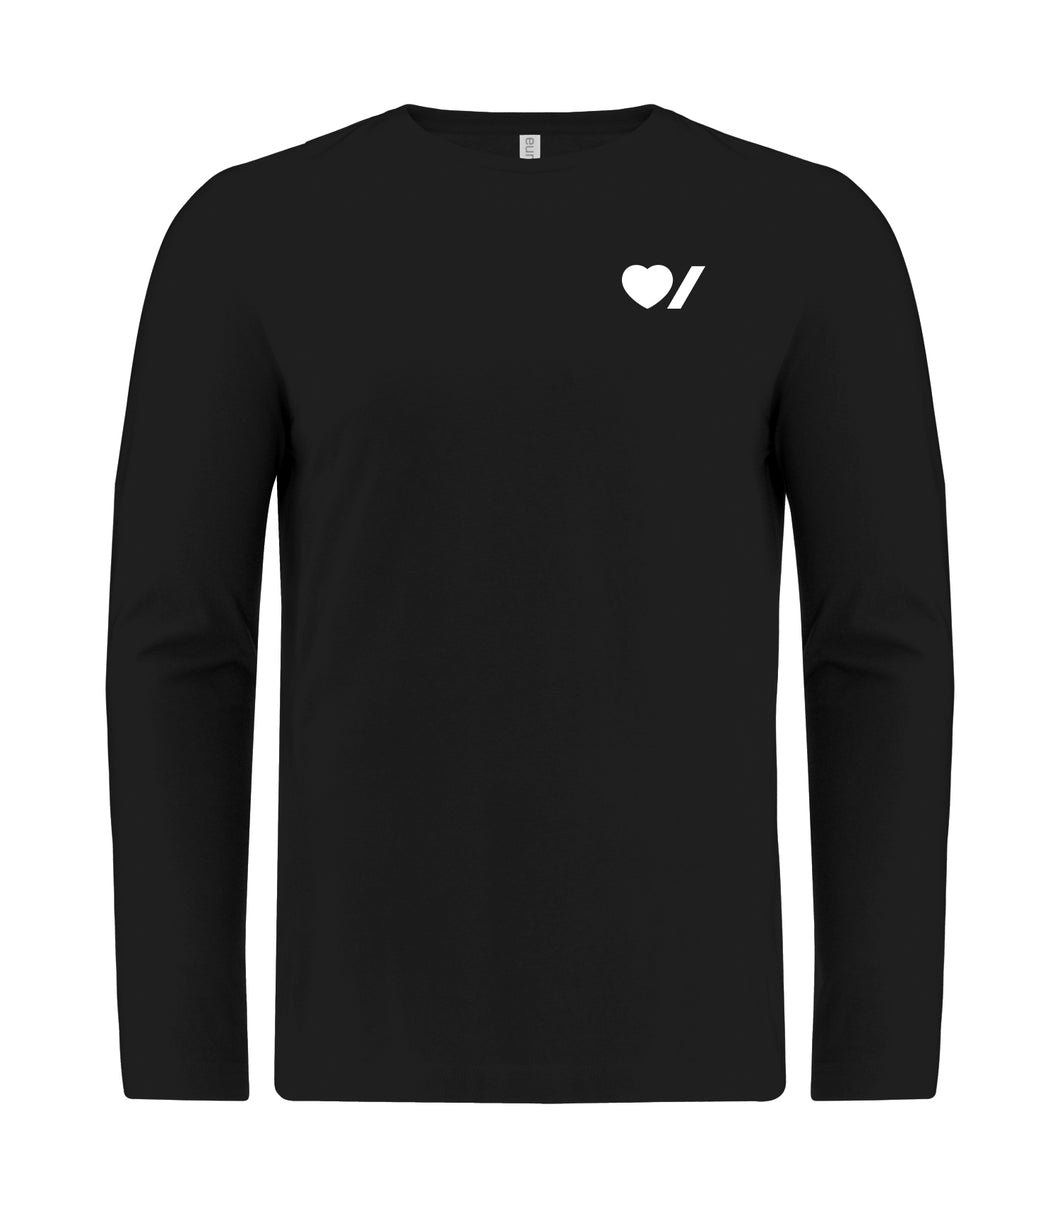 Heart & Stroke Long Sleeve Shirt